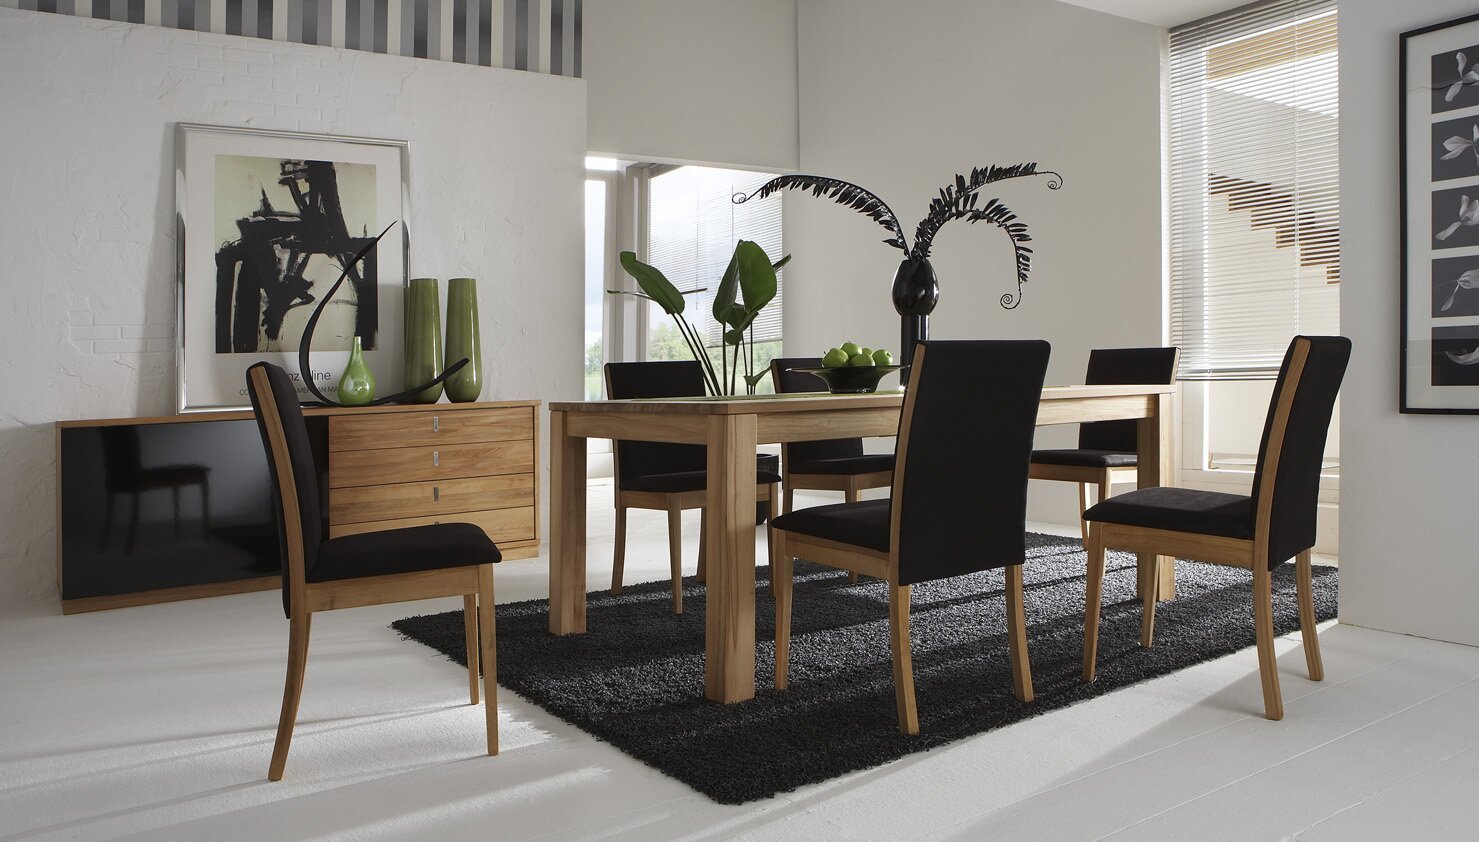 23 modern dining room examples with photos Images of modern dining rooms